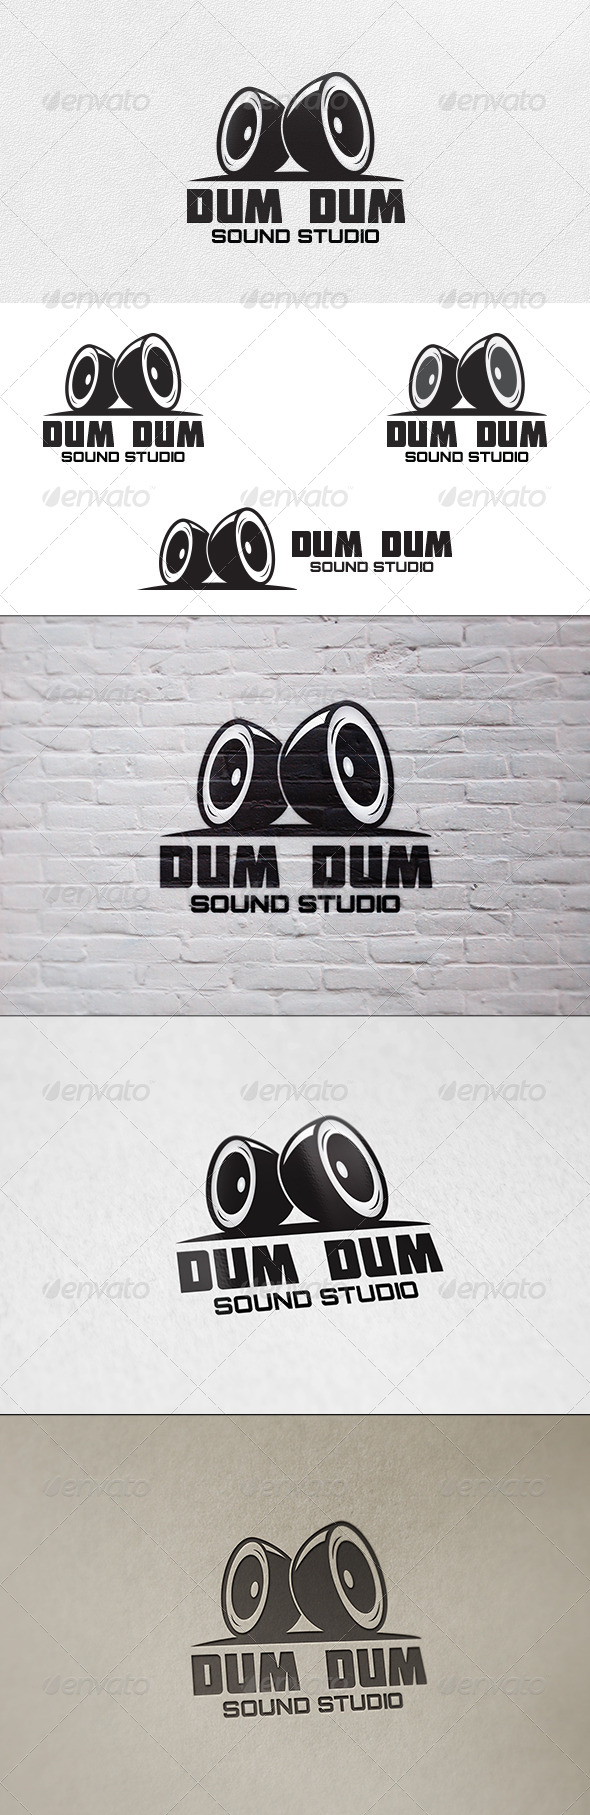 Sound Studio - Logo Template